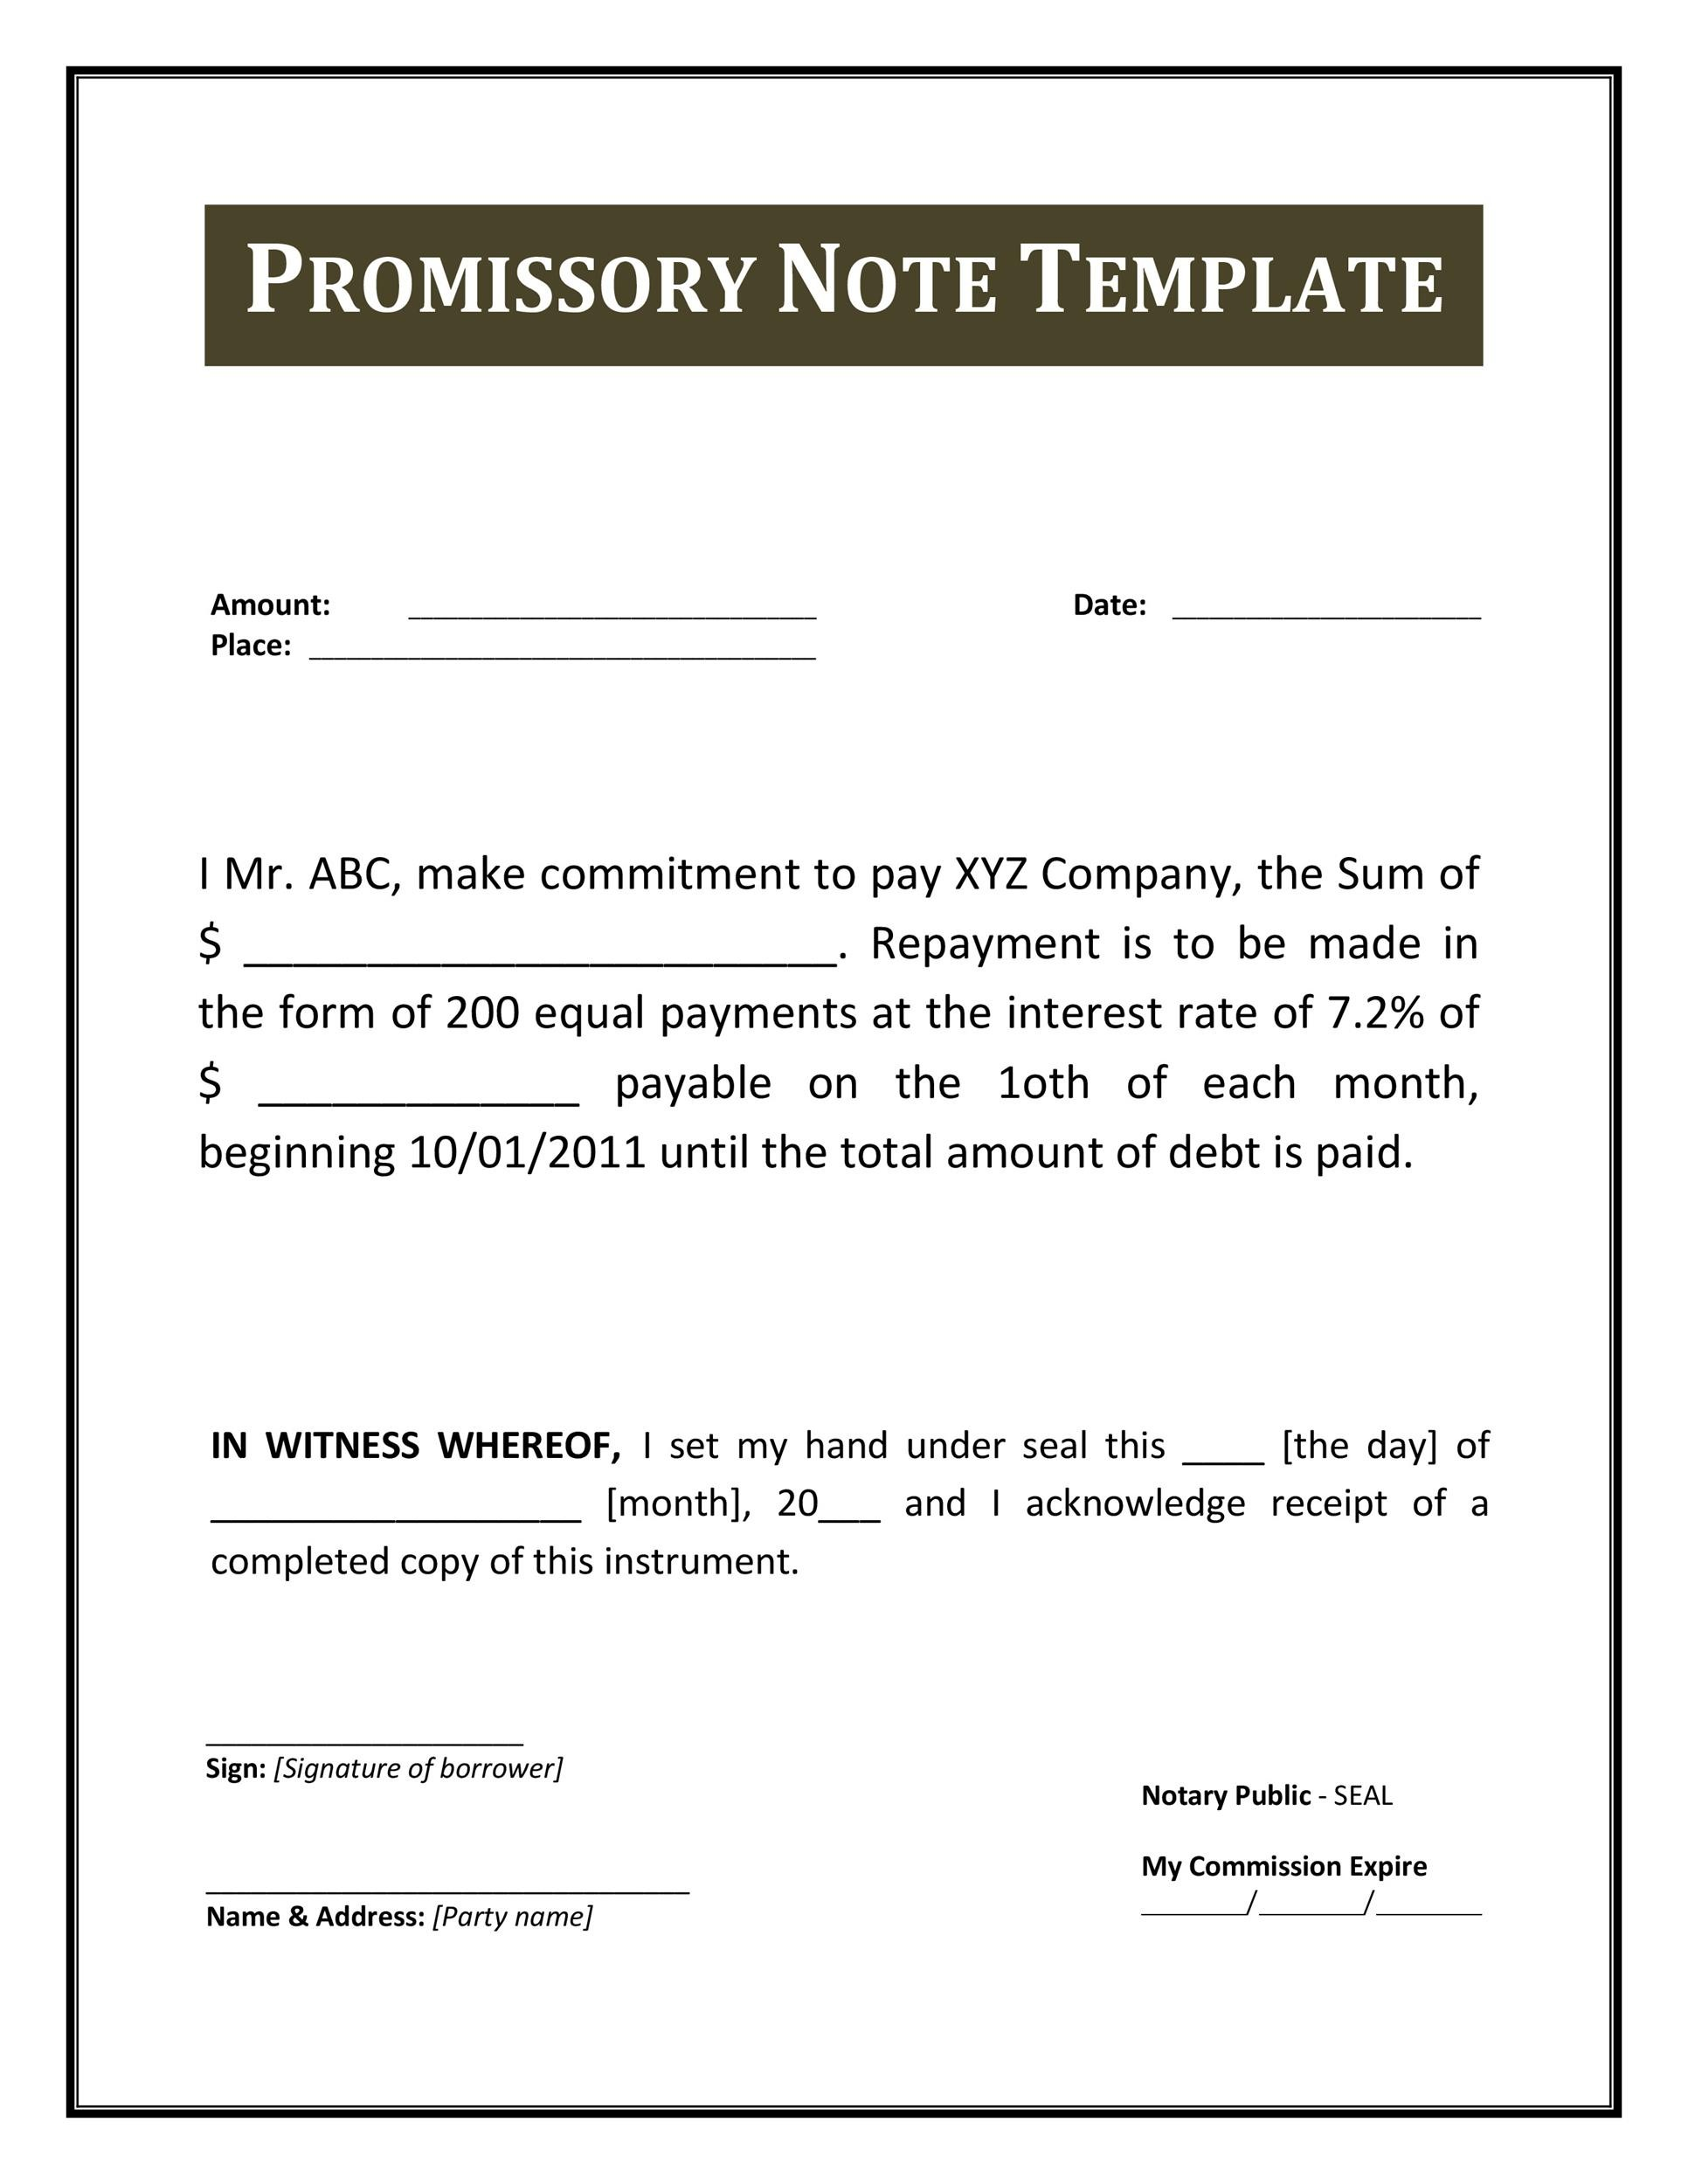 Charming Printable Promissory Note Template 33 For Promissory Note Template